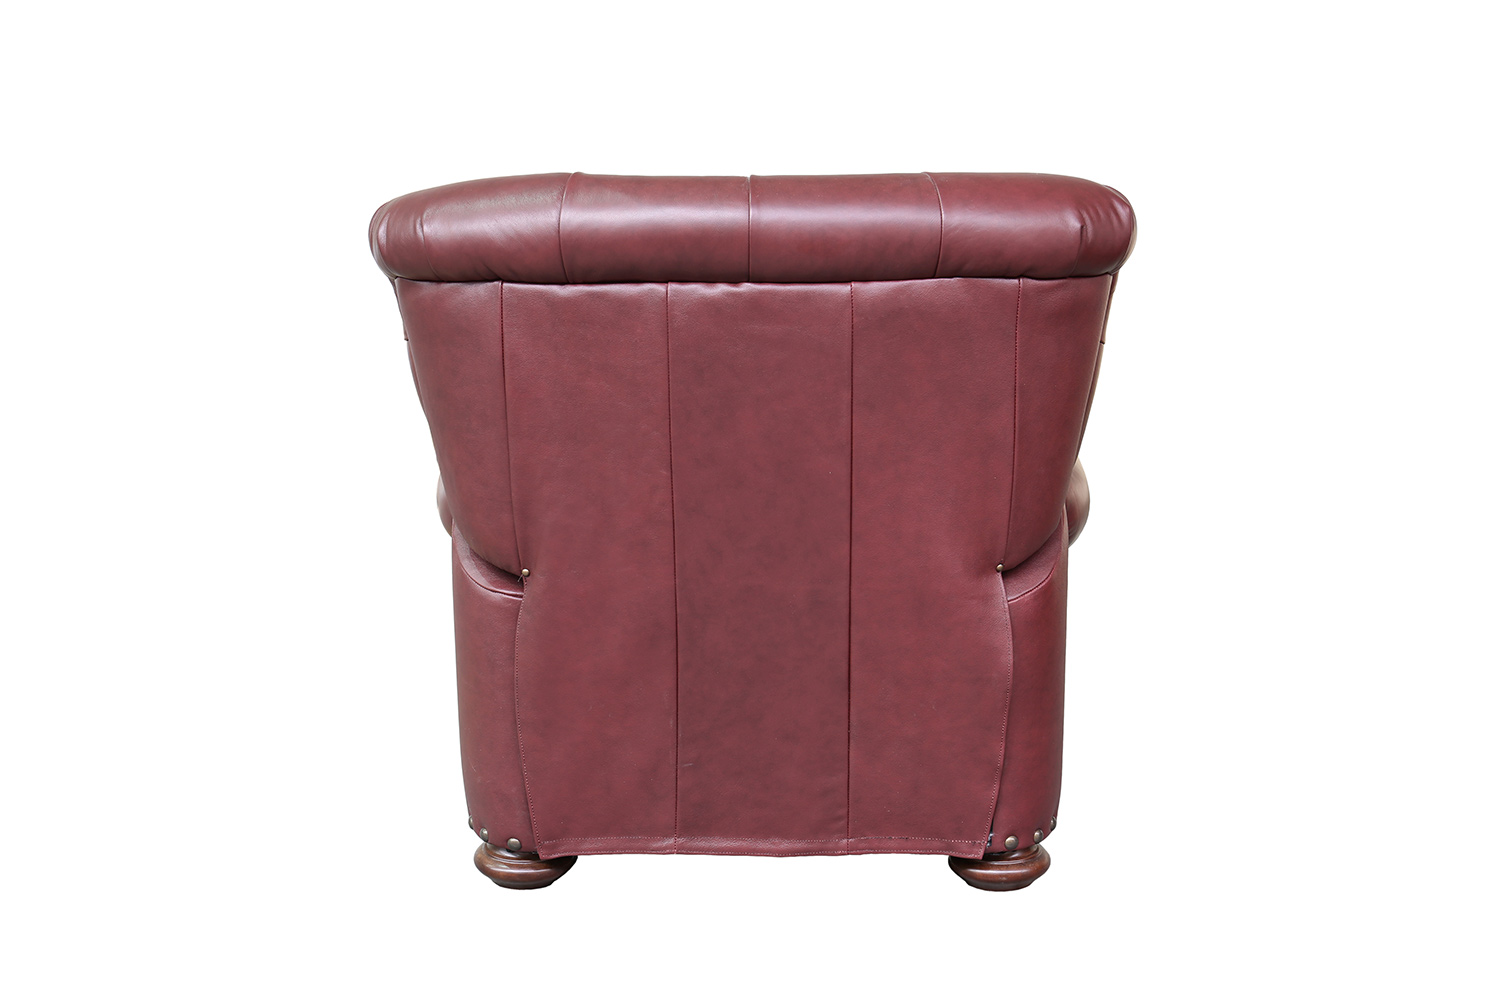 Barcalounger Sinclair Recliner Chair - Shoreham Wine/All Leather